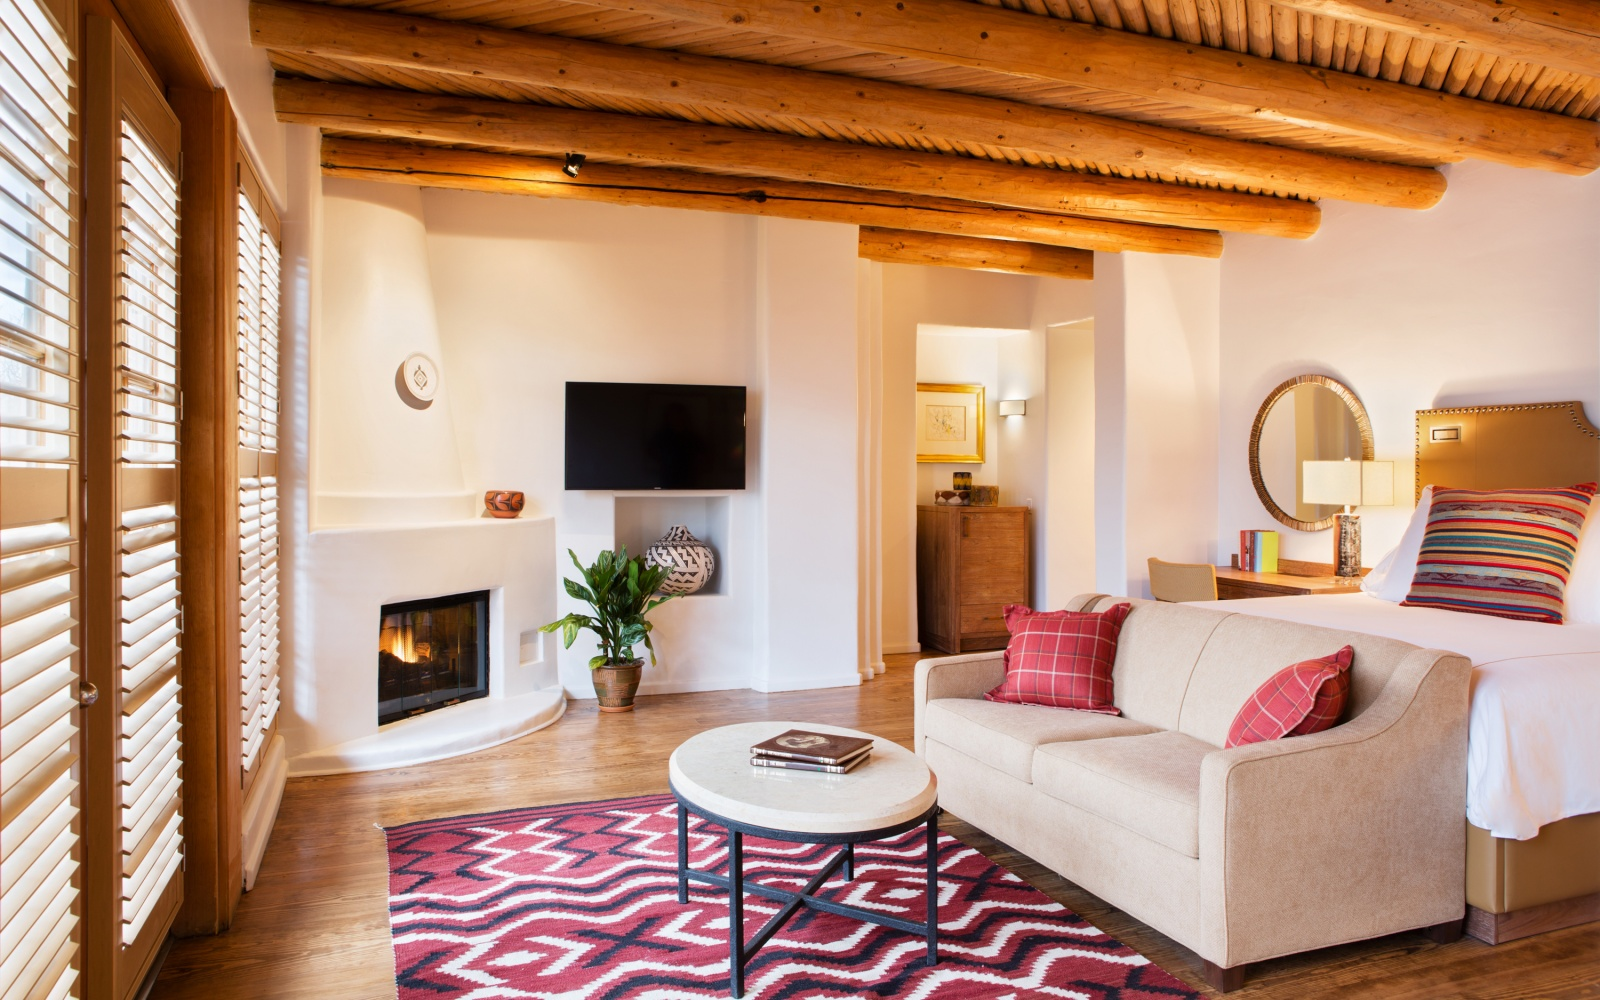 WBSMCITYHOTELS0715-rosewood-inn-of-the-anasazi.jpg